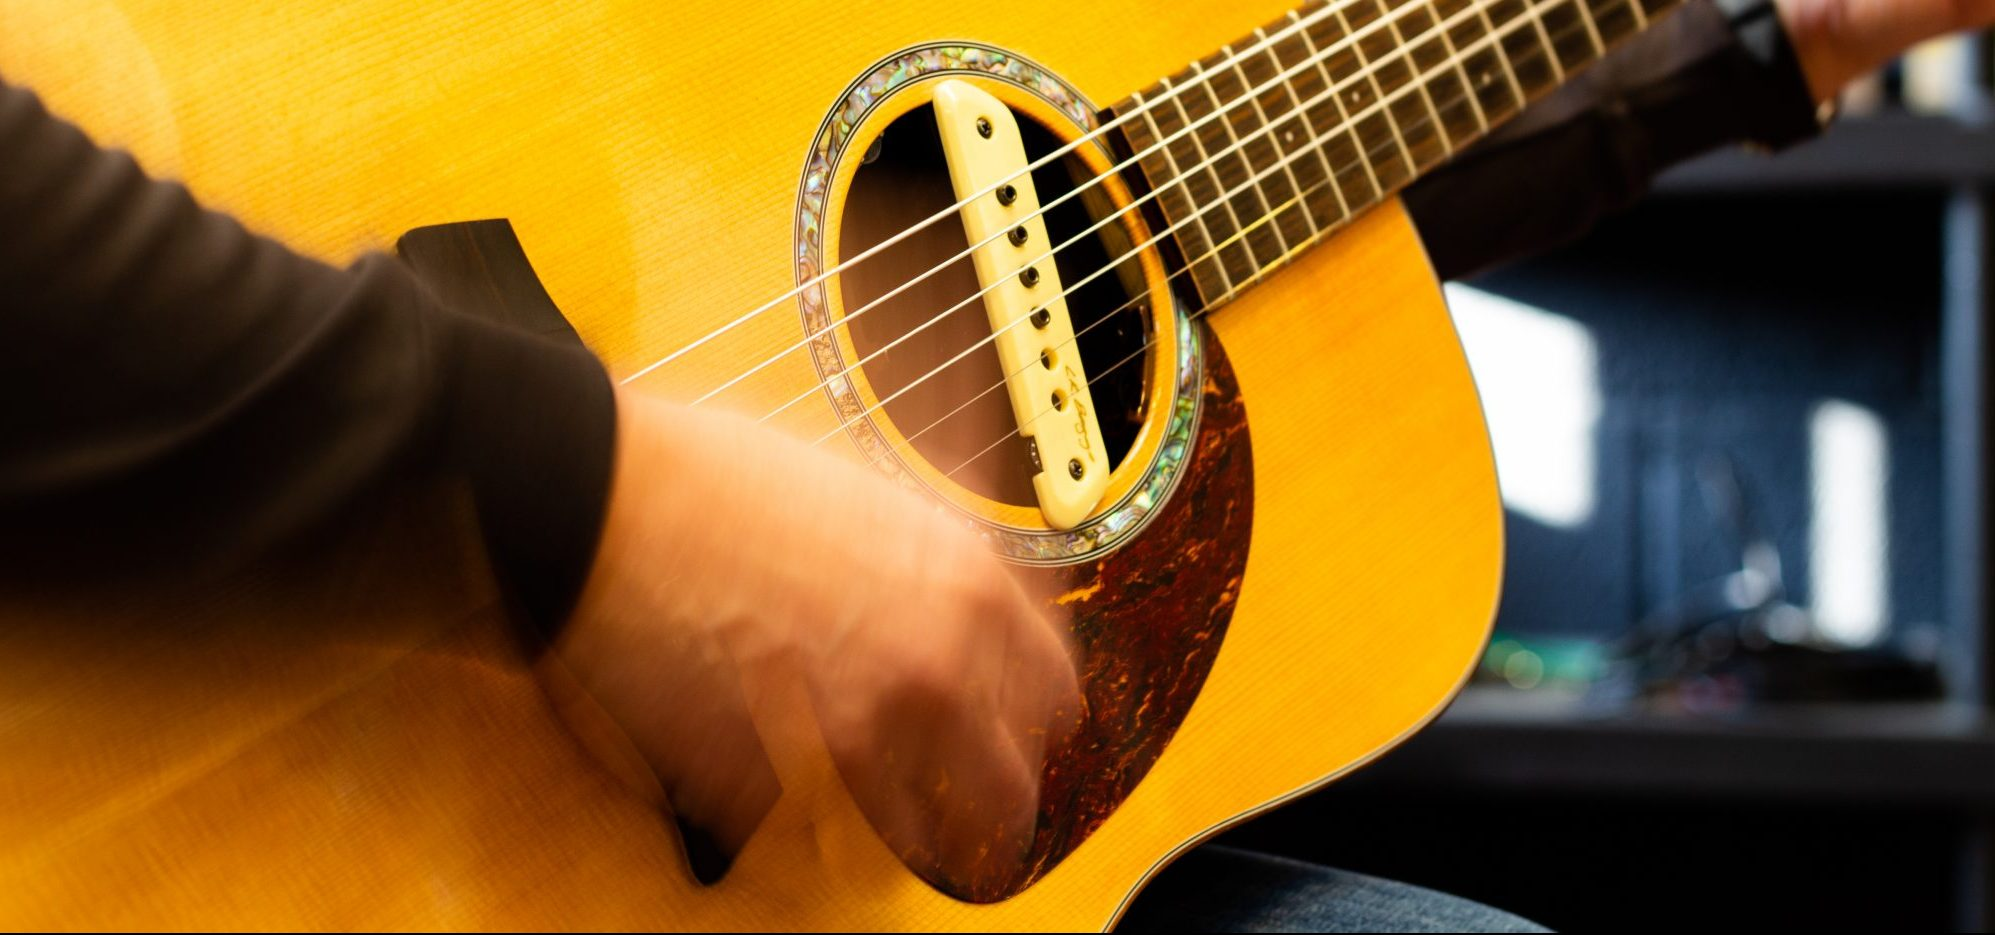 Acoustic guitar player with sound hole pickup